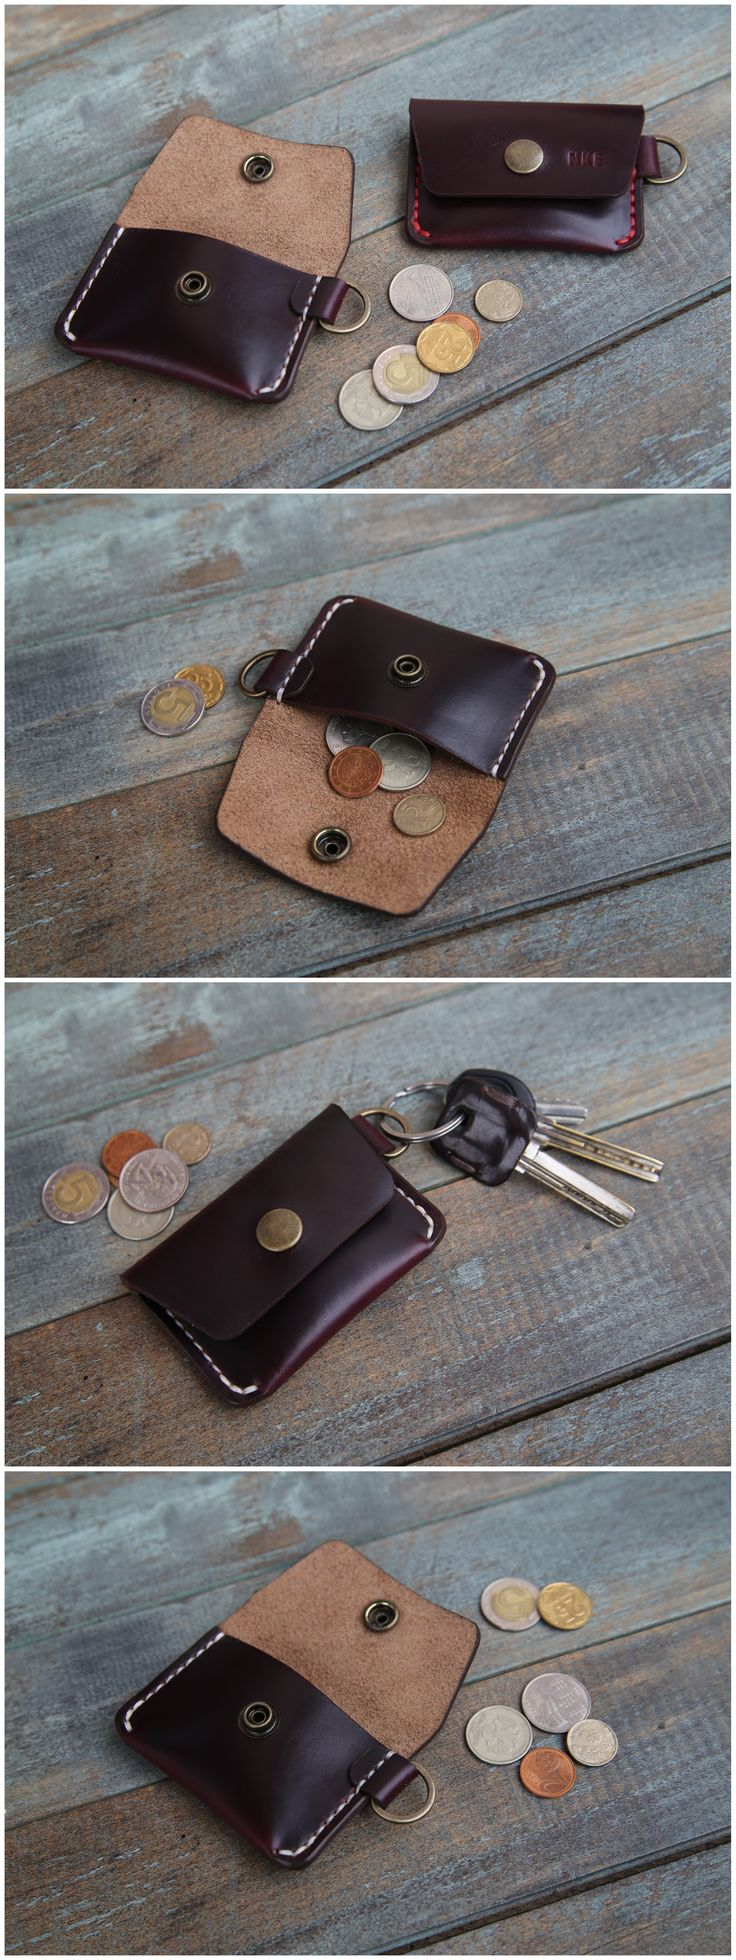 Horween Chromexcel Coin Purse also be very useful to use it as a keychain. #manufacturabrand#accessories #wallet #leather #handmade#leathergoods #everydaycary #handcraft #handstitched #leathercraft #horween #horweenwallet #coinpurse #coinwallet #coinpouch #keychain #leatherkeychain